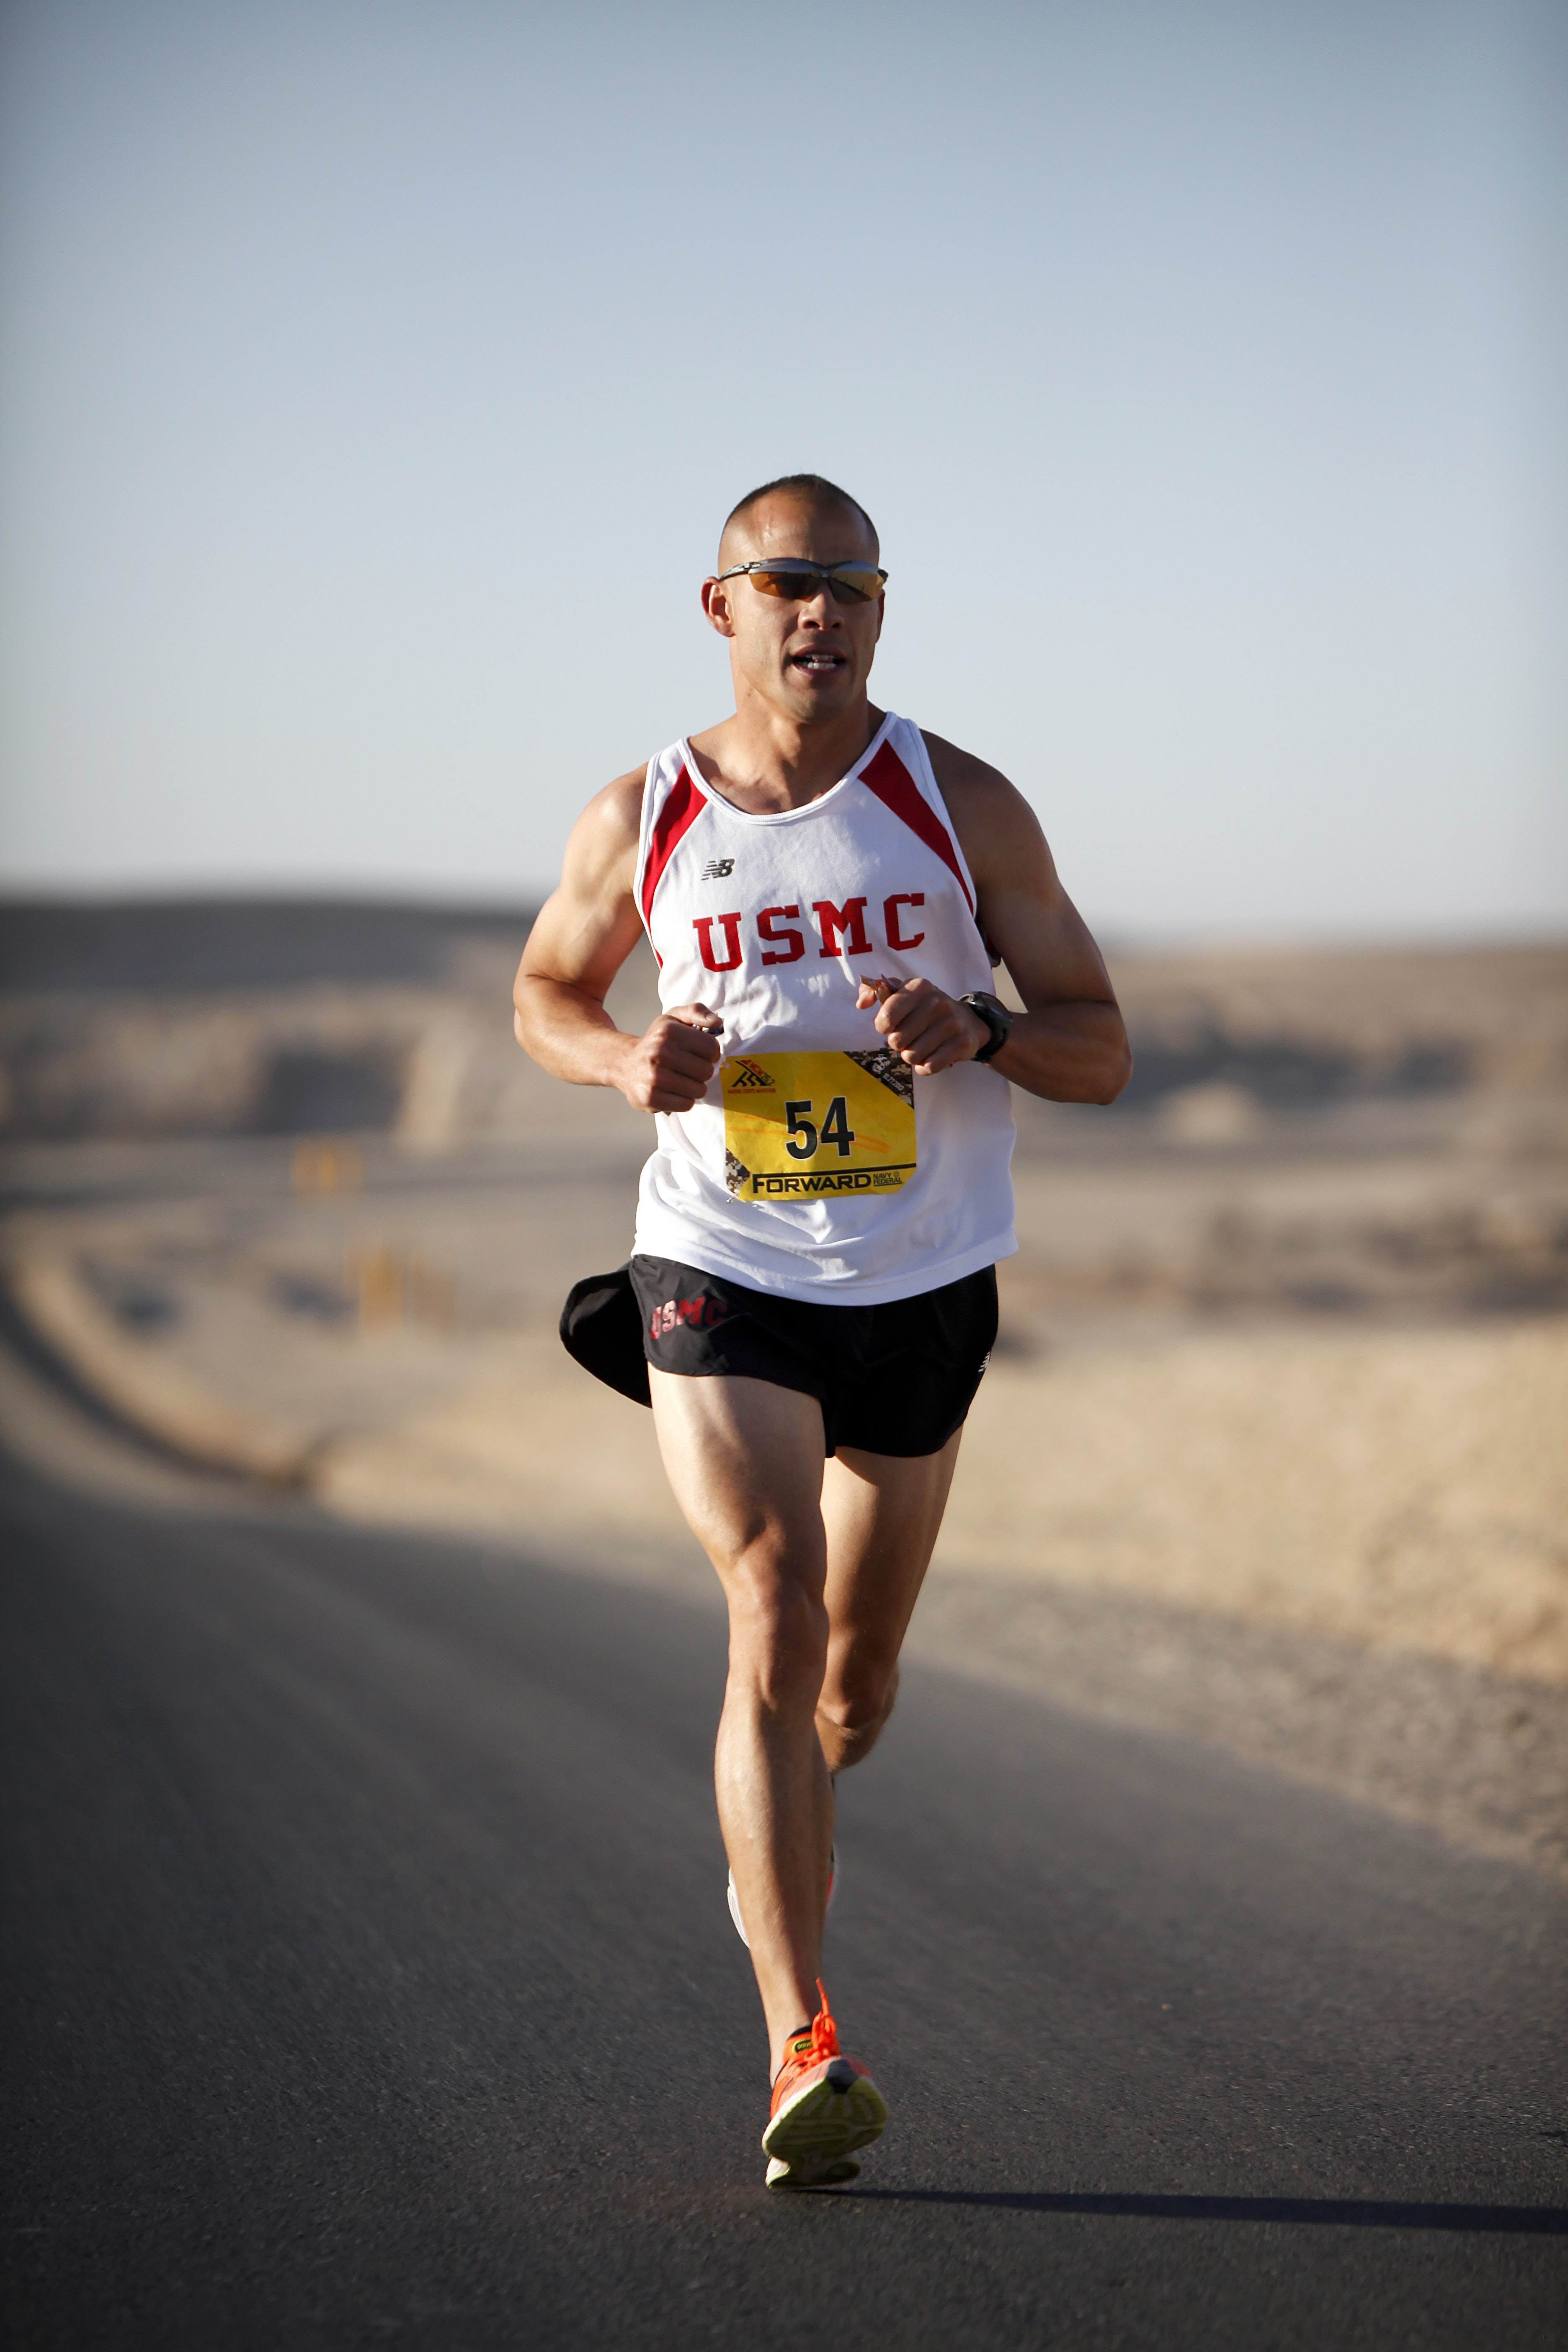 Man in White Jersey While Running, Run, Race, Person, Runner, HQ Photo